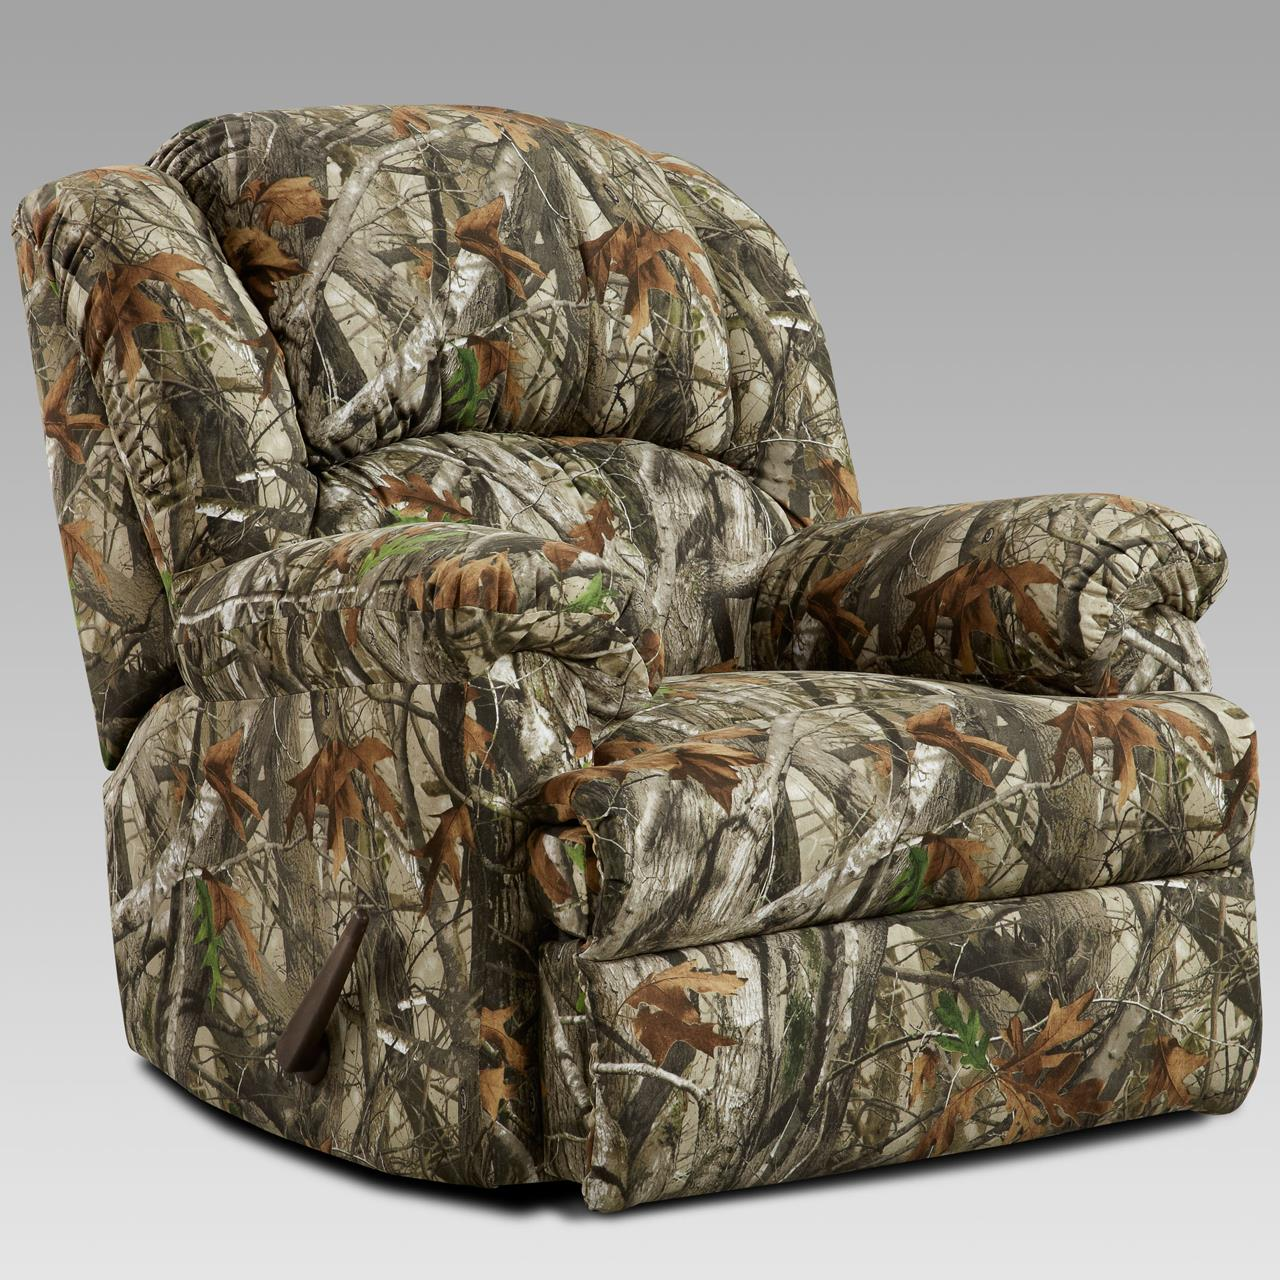 5500 Rocker Recliner by Affordable Furniture at Wilcox Furniture